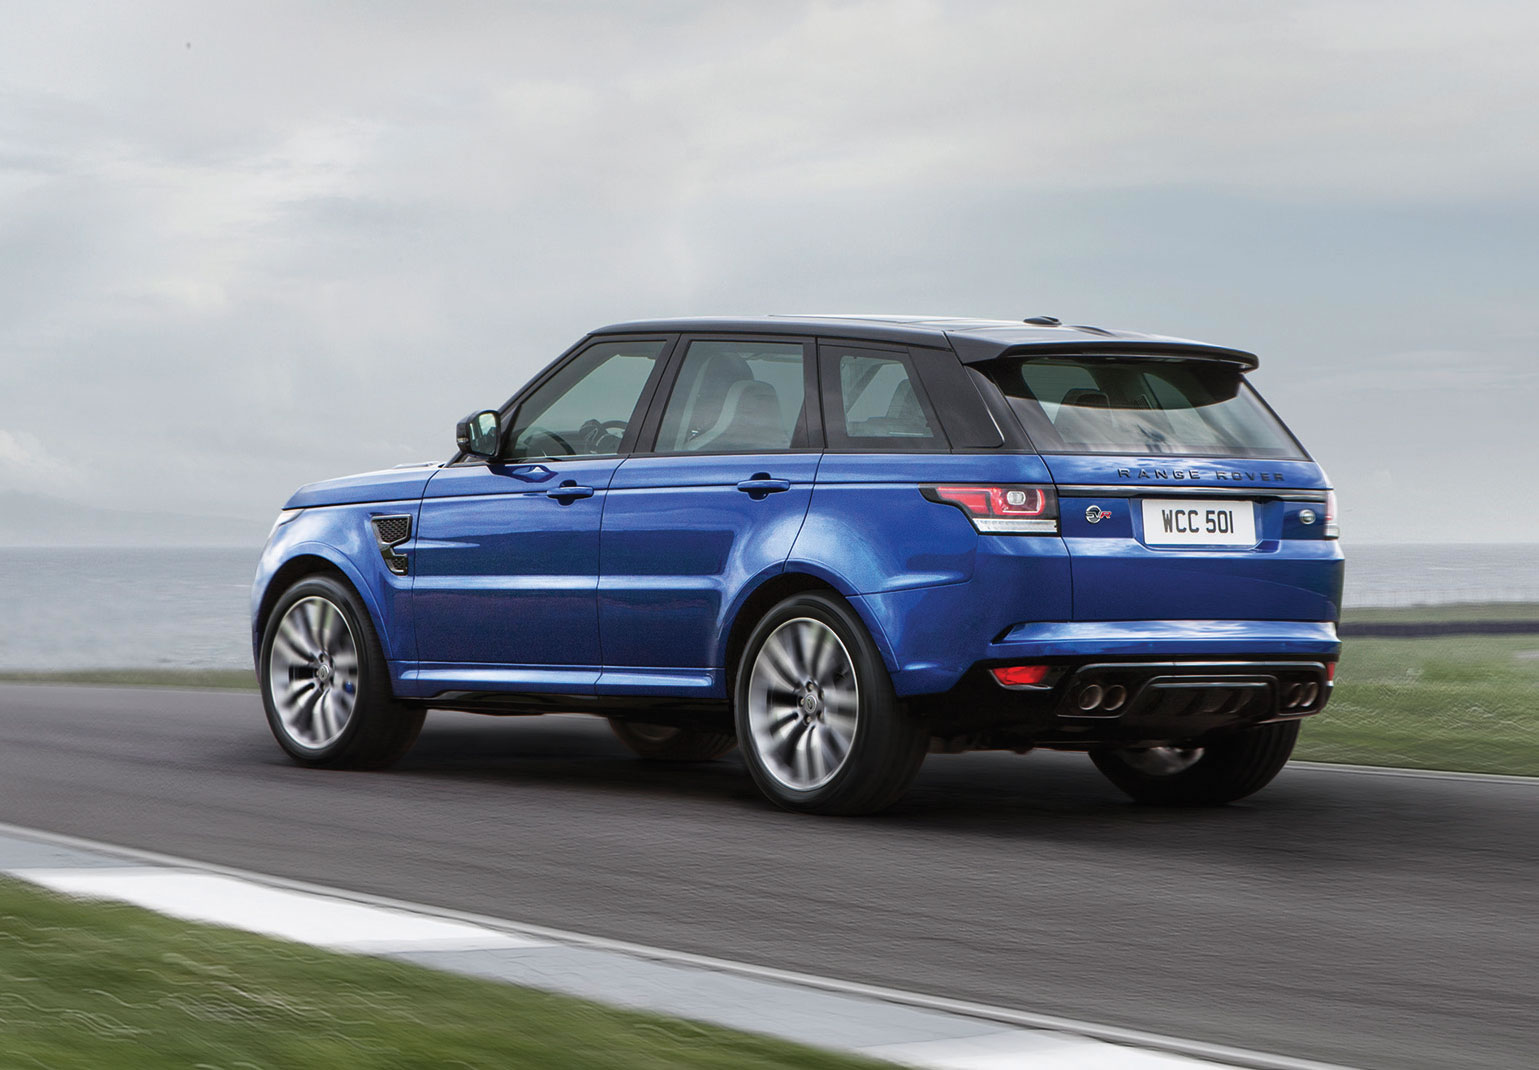 2015 land rover range rover sport svr rear photo. Black Bedroom Furniture Sets. Home Design Ideas